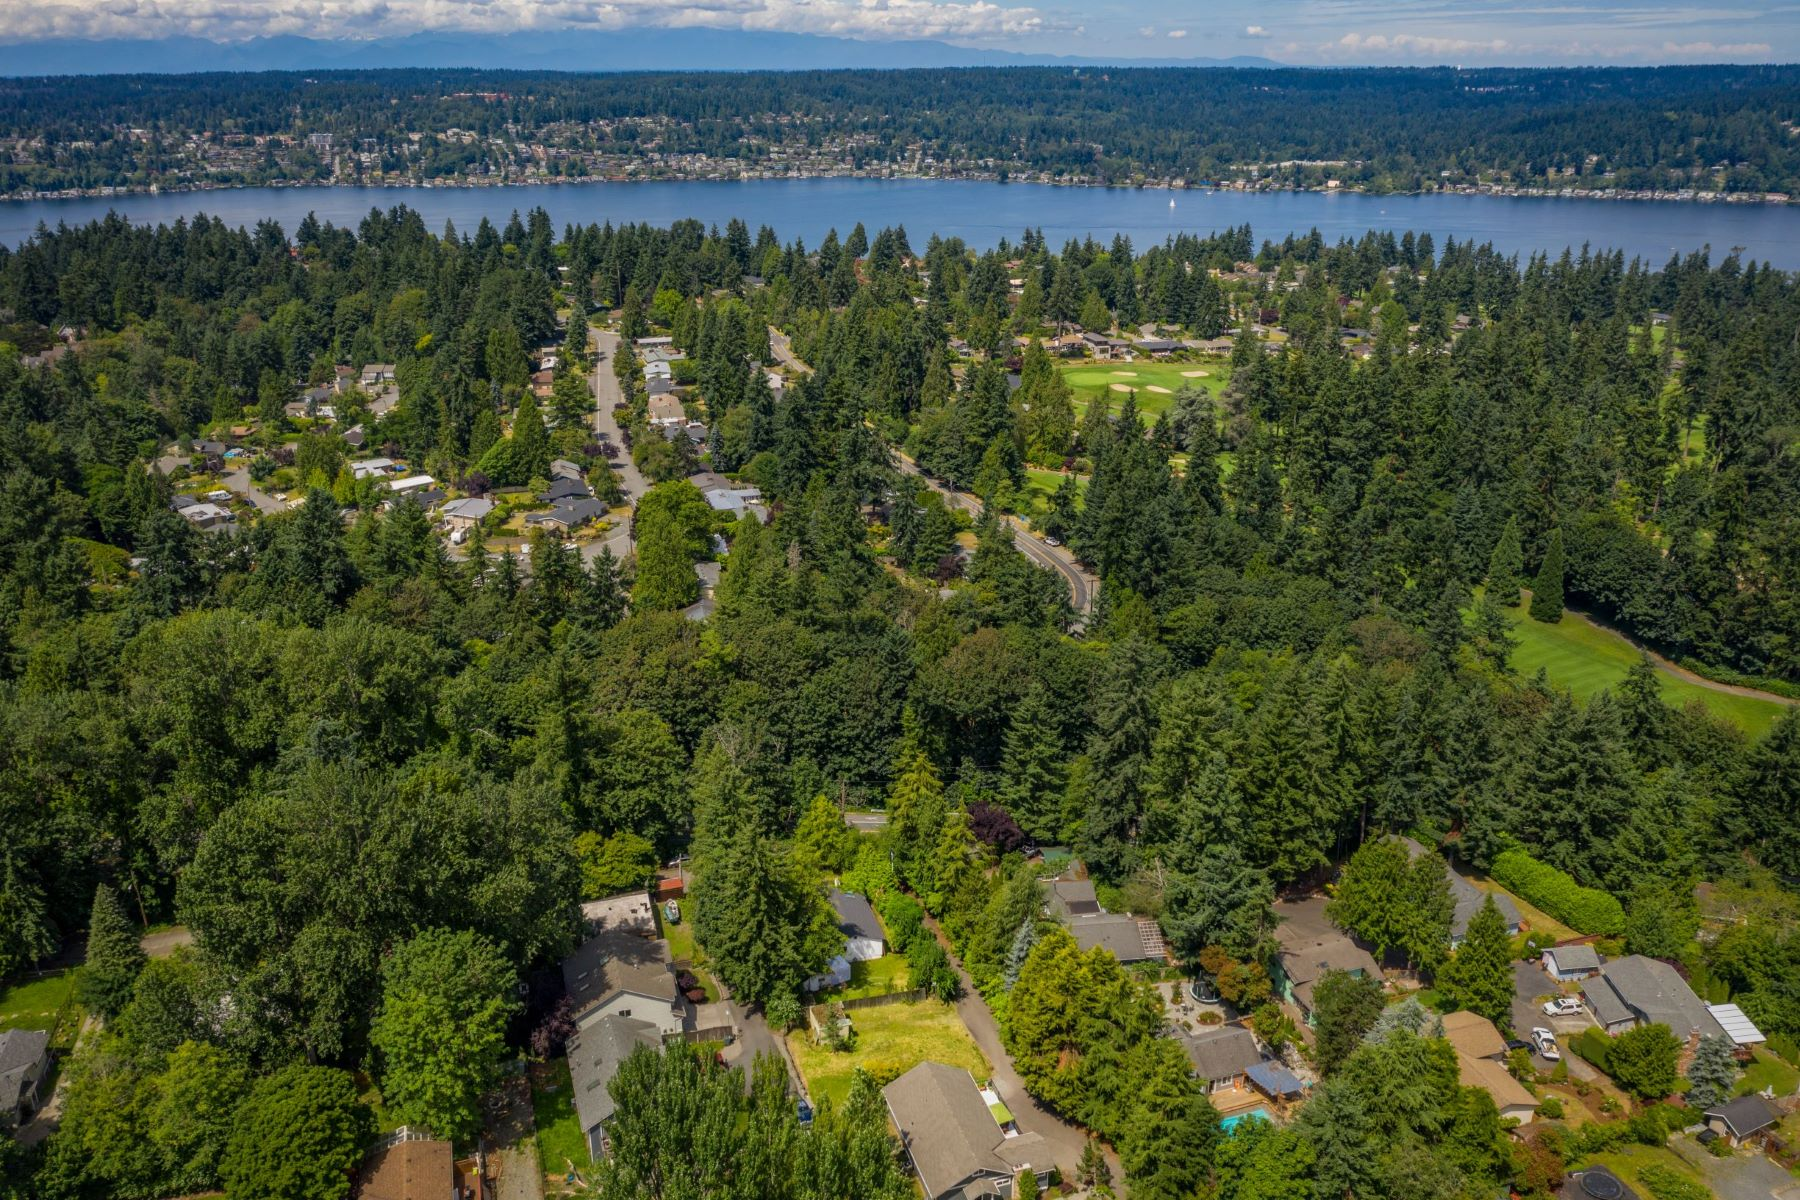 Terreno por un Venta en Beautiful Building Opportunity in Kenmore Near the Shore of Lake Washington XXXX Juanita Dr NE Kenmore, Washington 98028 Estados Unidos